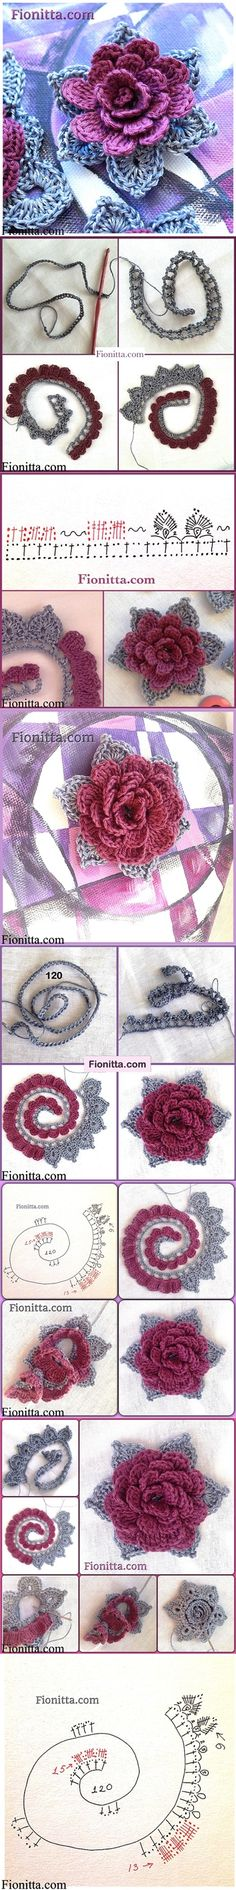 DIY Crochet Rose In 3 Ways - Betty - DIY Crochet Rose In 3 Ways These Crochet Flowers are pretty as a picture and perfect for adding to hats, brooches, hair clips, bags and so much more! Have you ever had a boring ja - Crochet Diy, Crochet Motifs, Crochet Flower Patterns, Love Crochet, Irish Crochet, Crochet Designs, Crochet Crafts, Crochet Stitches, Crochet Projects